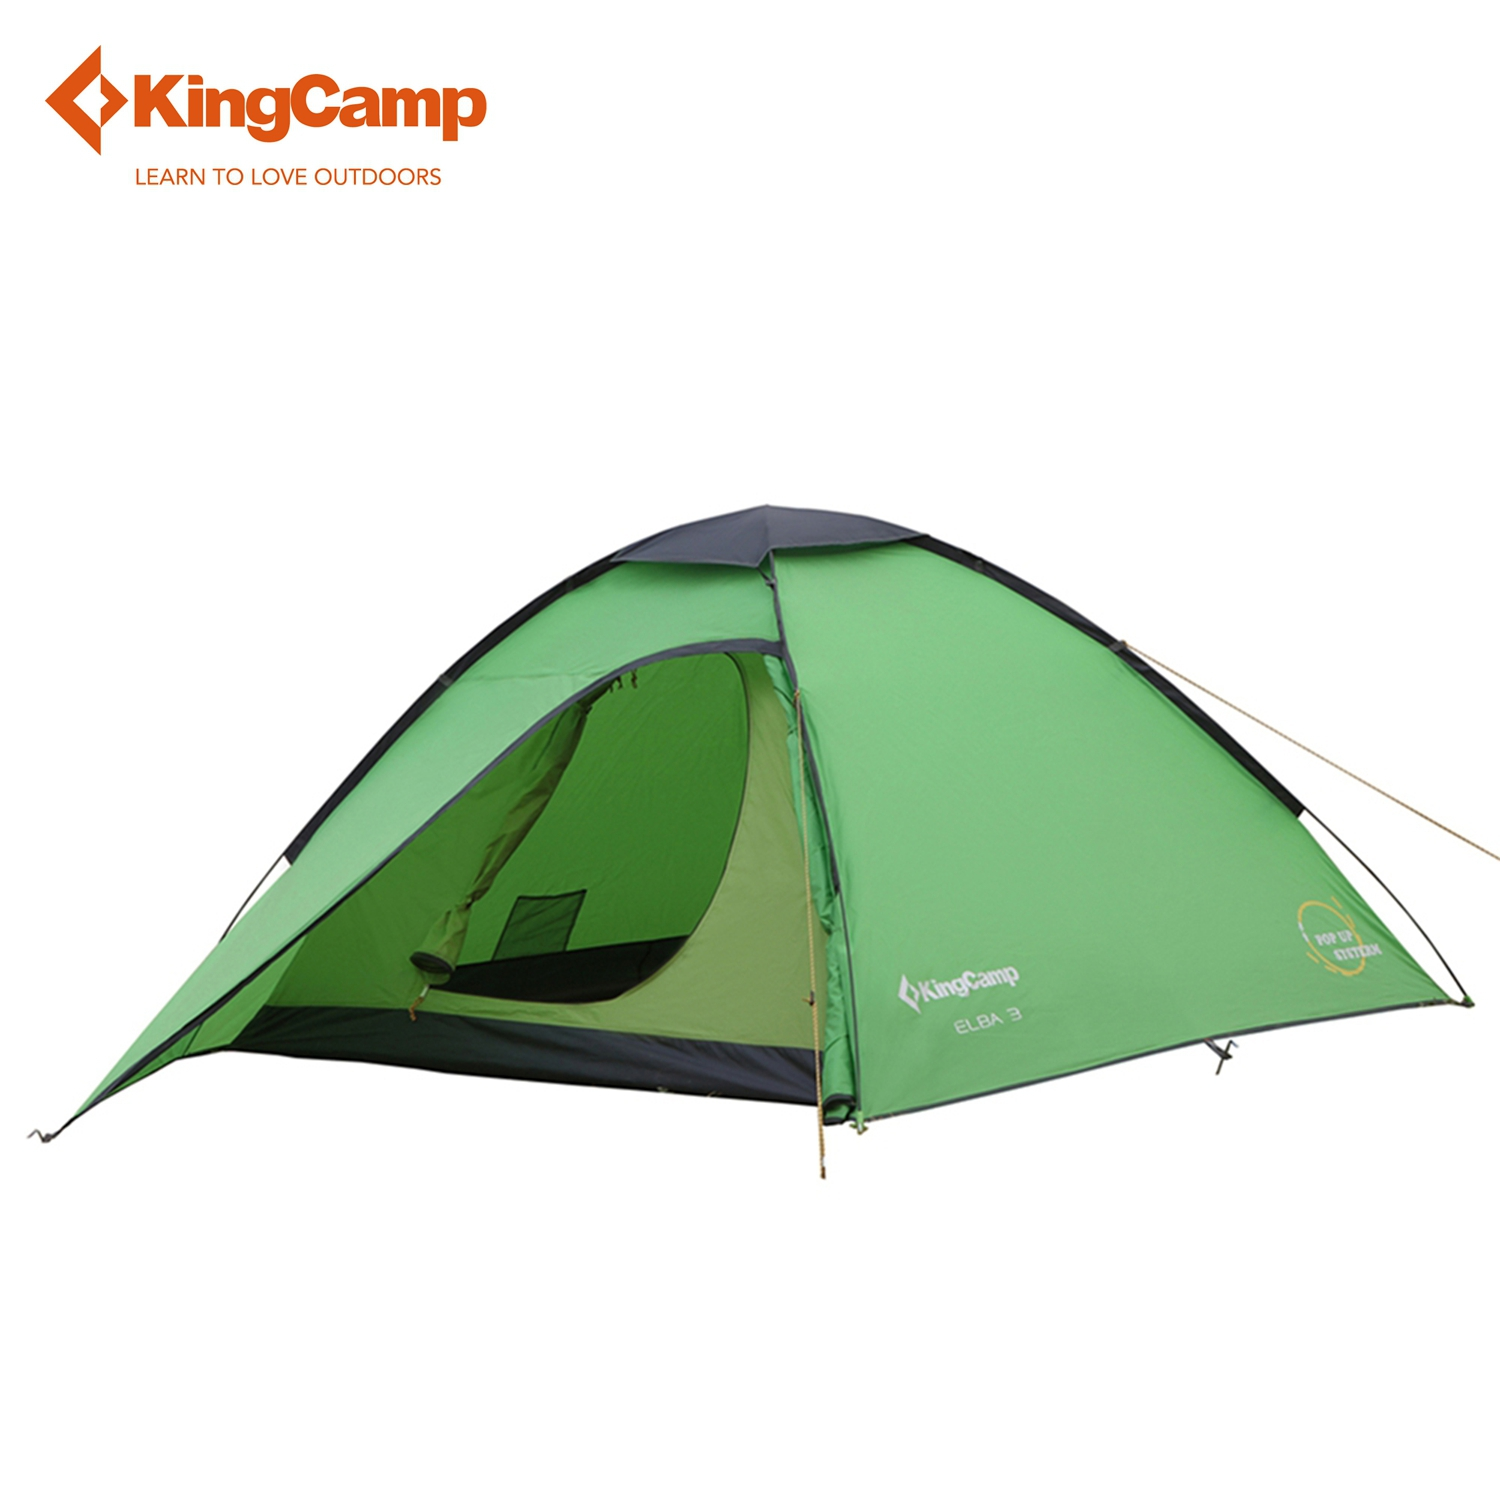 Portable Dome Tents : Kingcamp person season outdoor portable lightweight